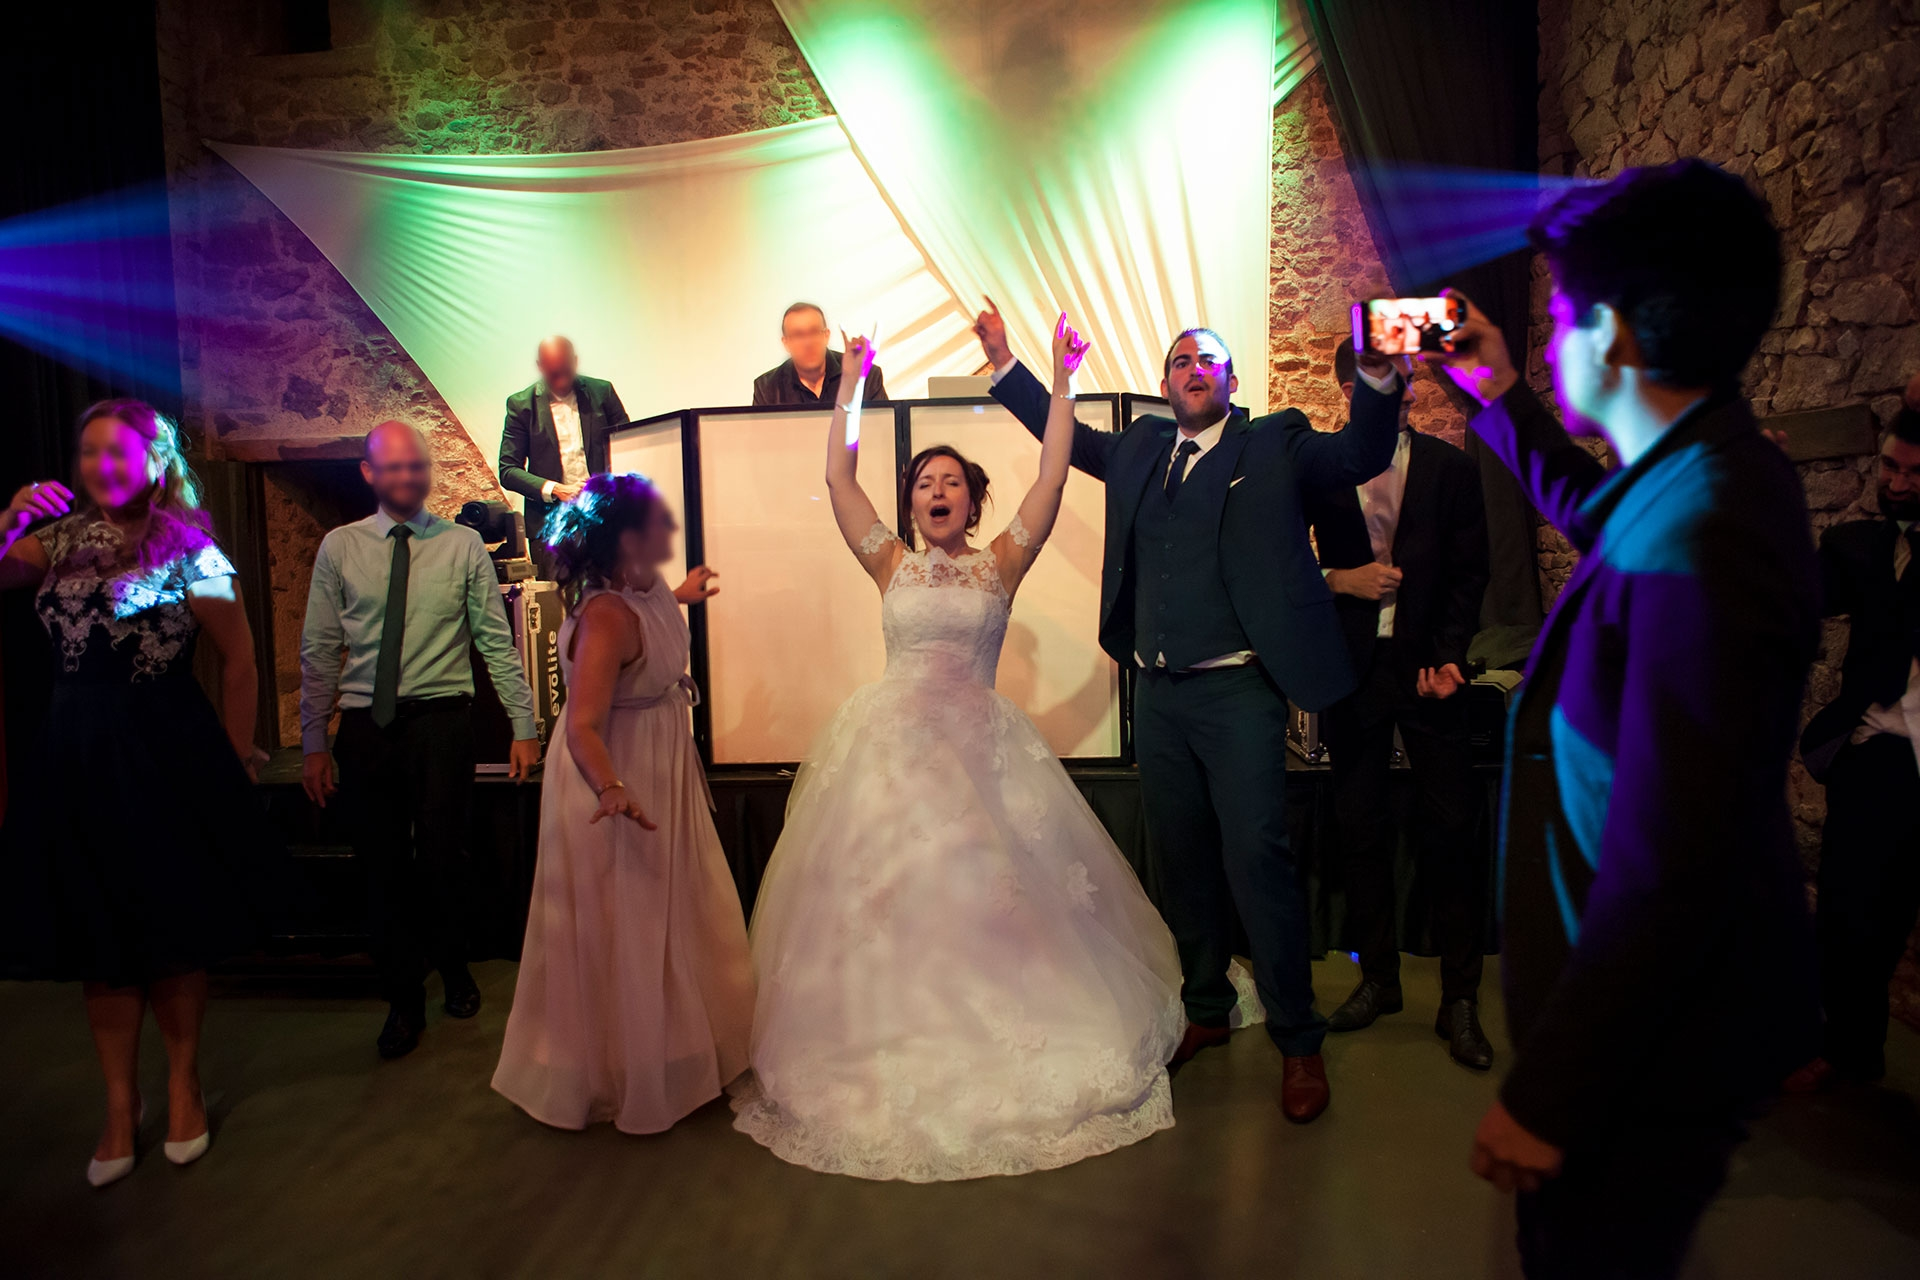 particuliers-evenements-mariage-oui-tiphaine&rudy-64